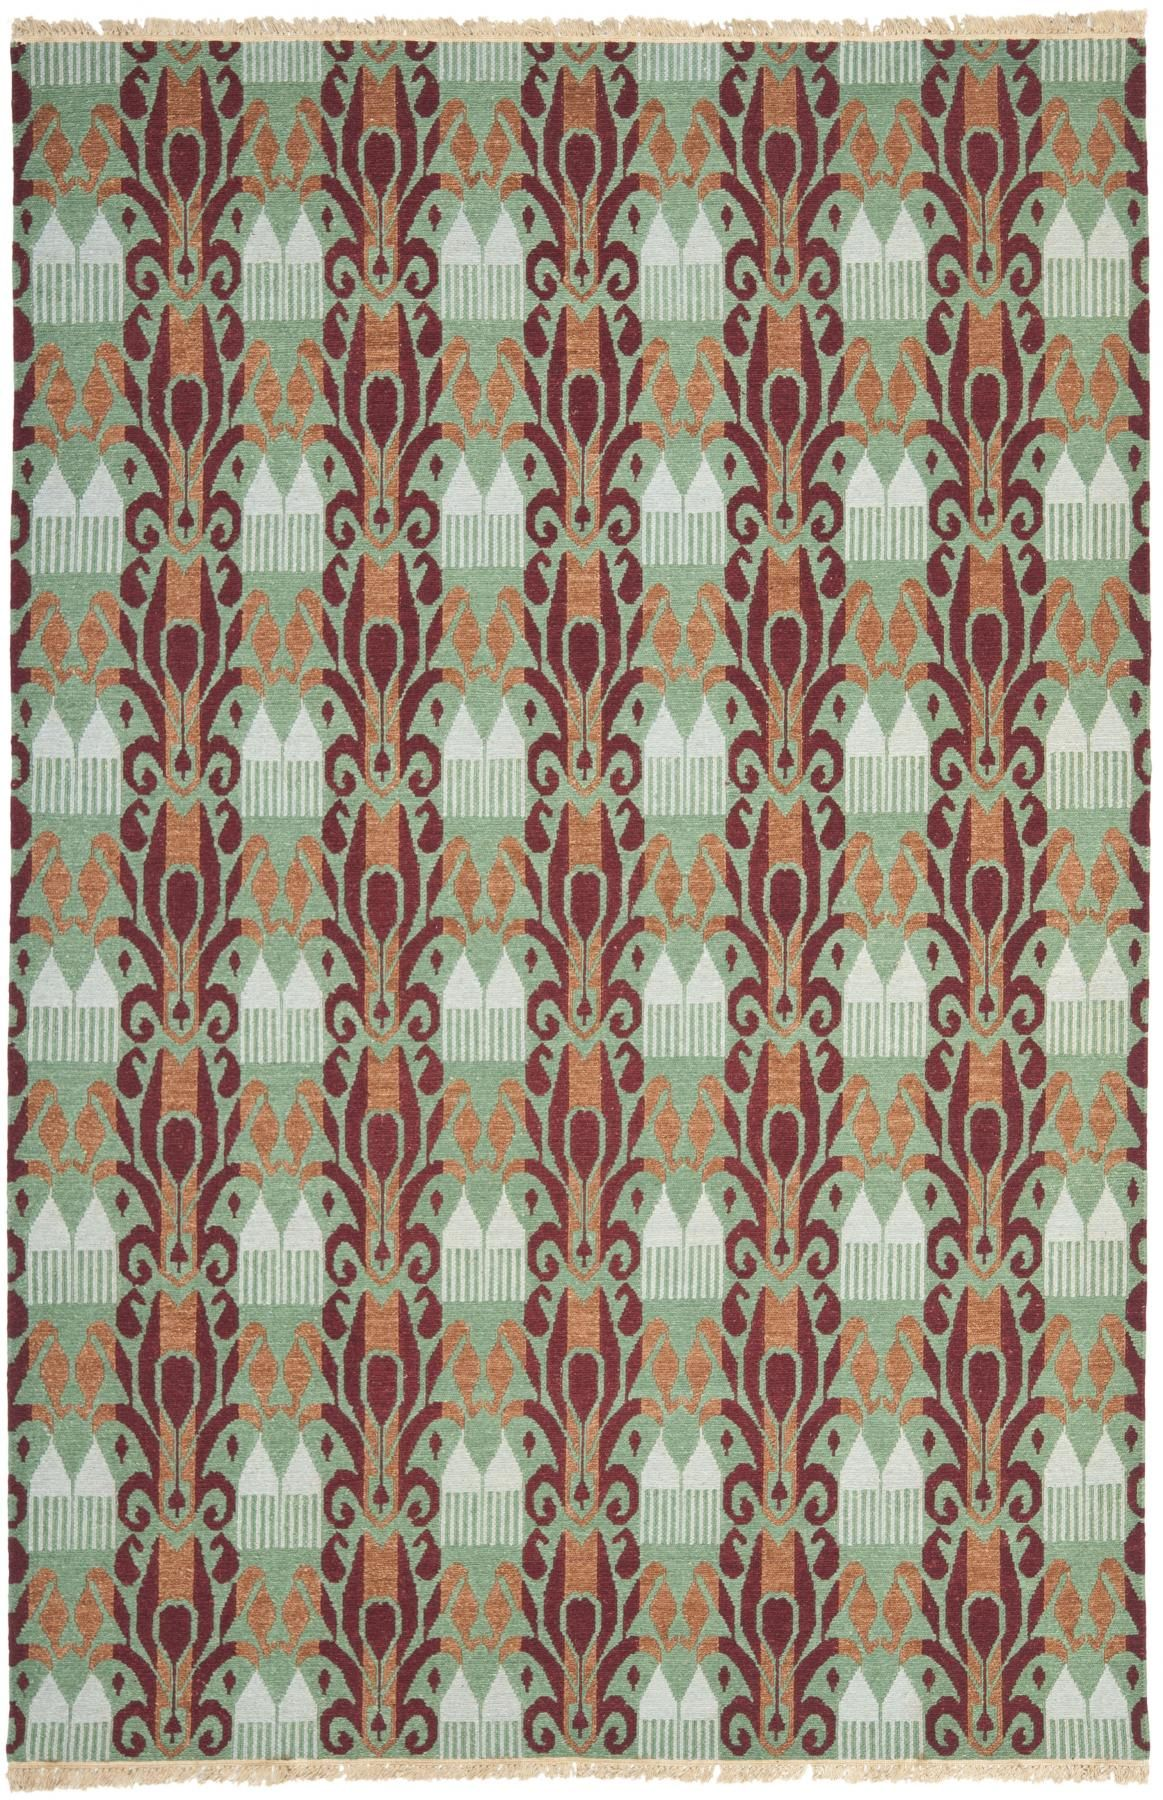 Rug DVE511A - Safavieh Rugs - %%collections%% Rugs - %%materials%% Rugs - Area Rugs - Runner Rugs